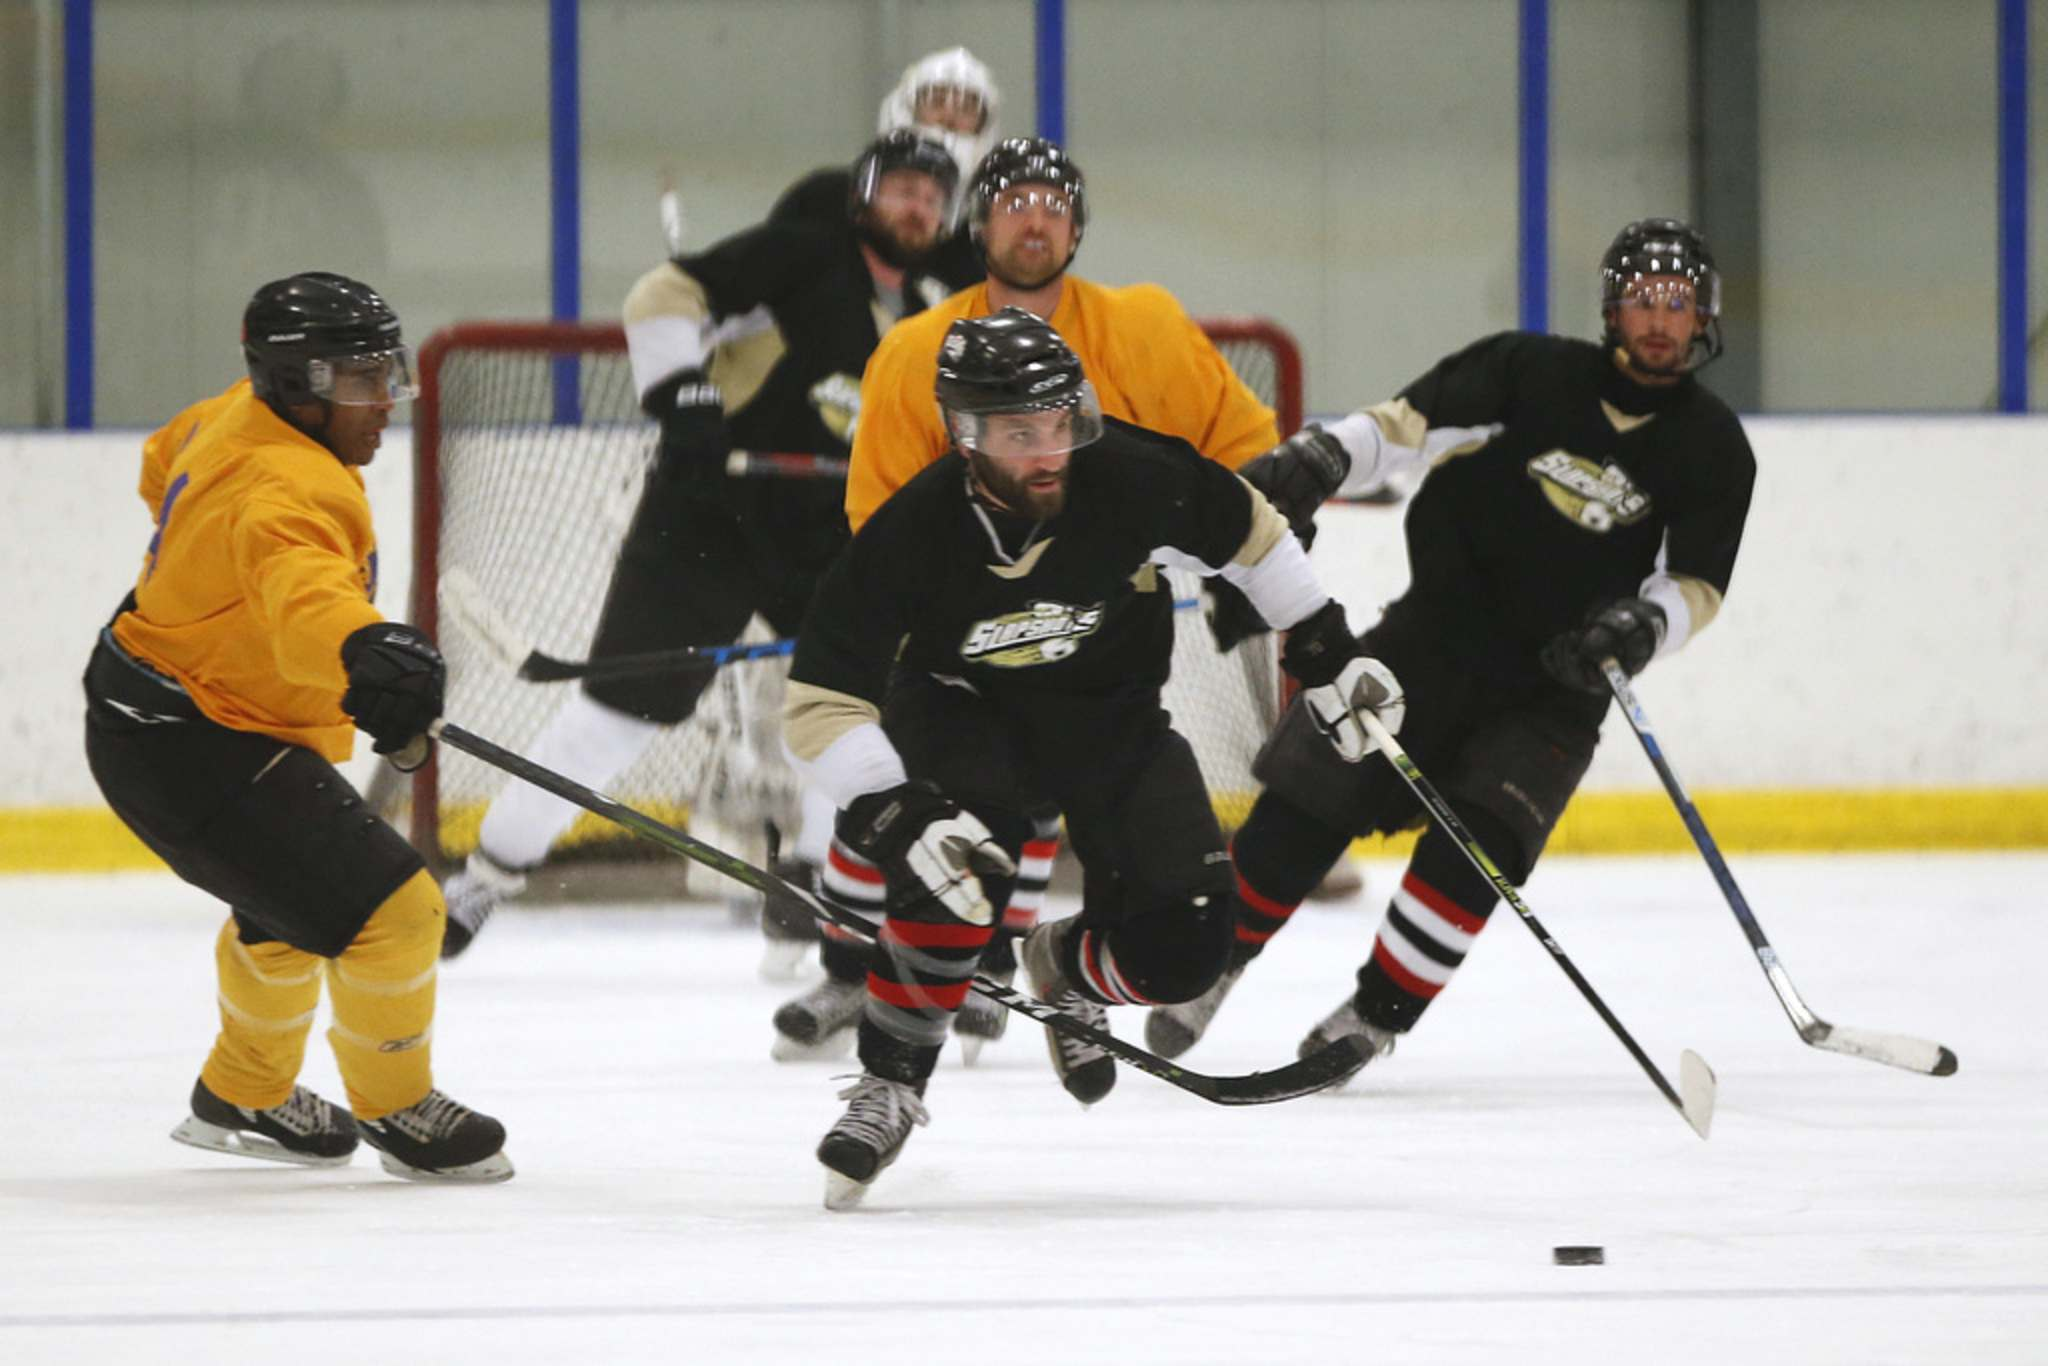 JOHN WOODS / WINNIPEG FREE PRESS</p><p>The Purple Reign (in yellow) play the Slapshots in division 3 of the Winnipeg Rec Hockey League at Seven Oaks Arena Monday.</p>